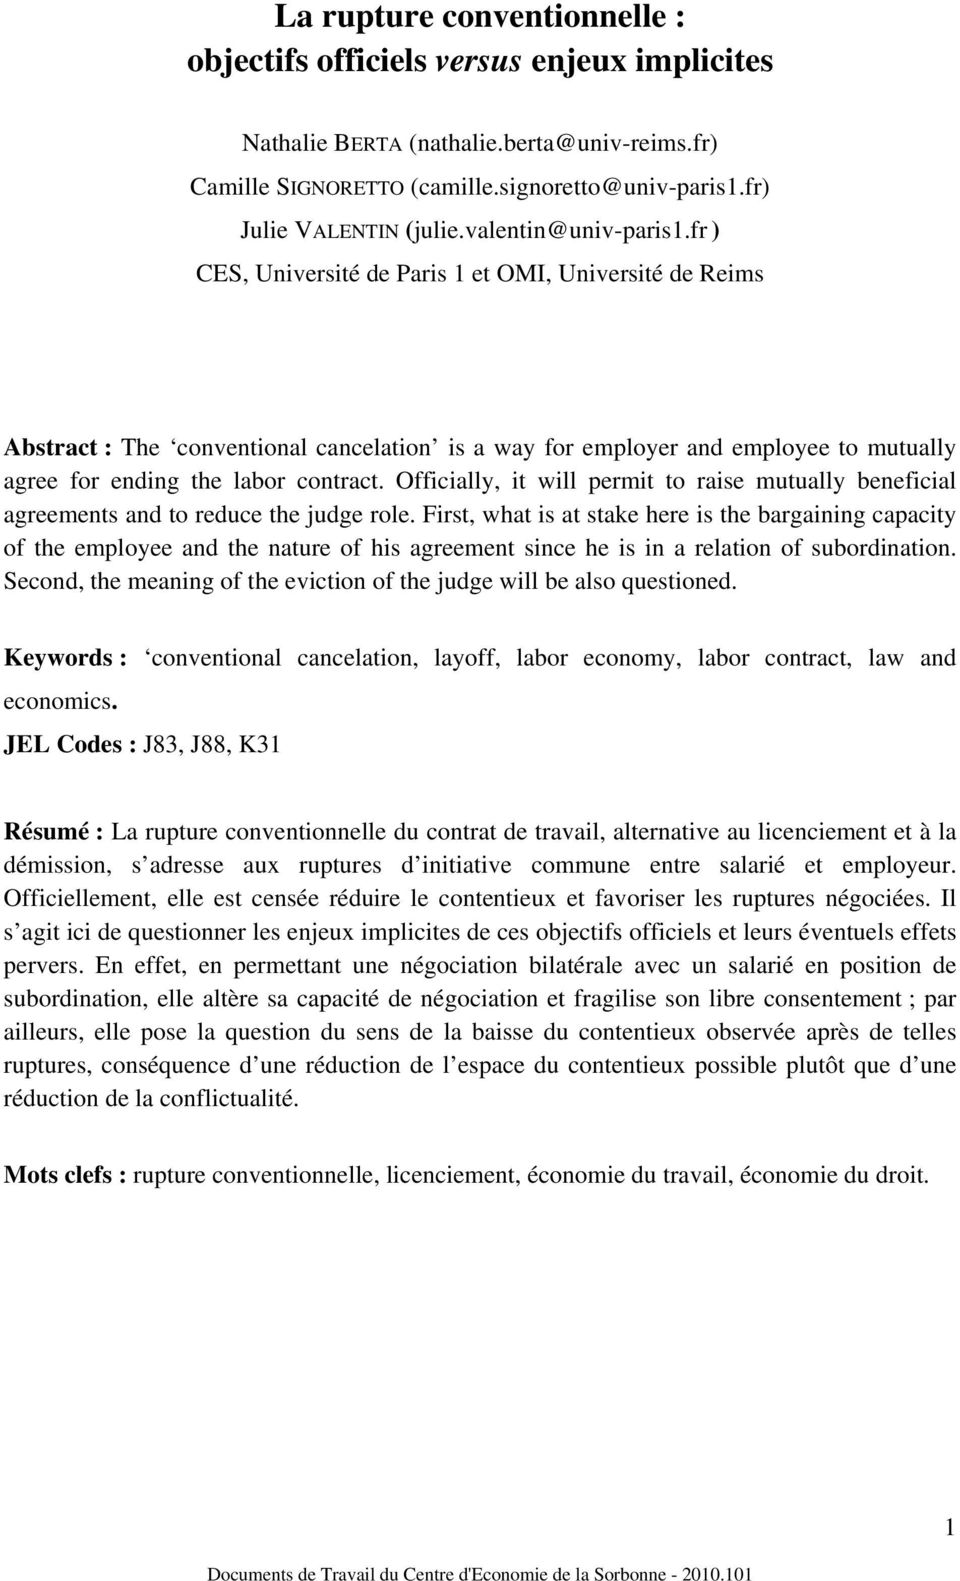 fr ) CES, Université de Paris 1 et OMI, Université de Reims Abstract : The conventional cancelation is a way for employer and employee to mutually agree for ending the labor contract.